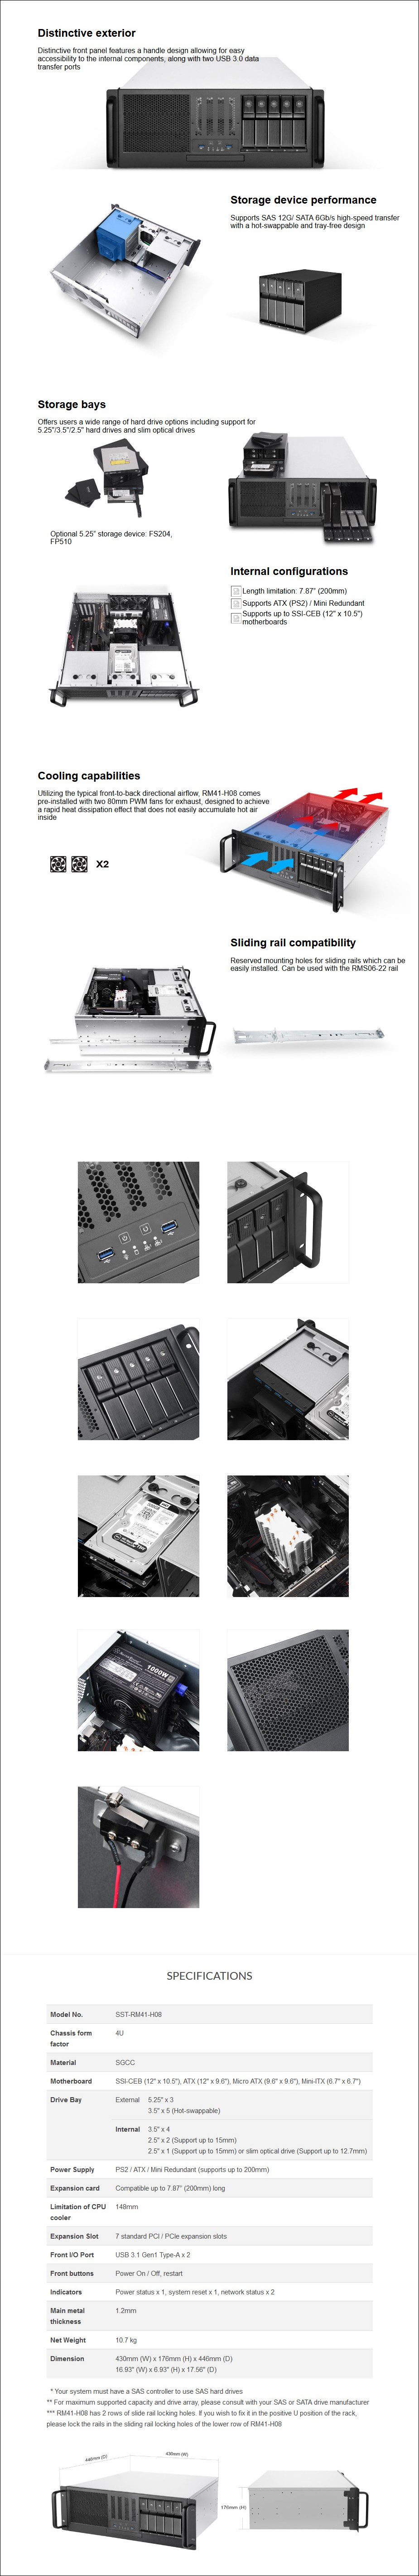 SilverStone RM41-H08 4U SSI-CEB Rackmount Server Chassis - Overview 1